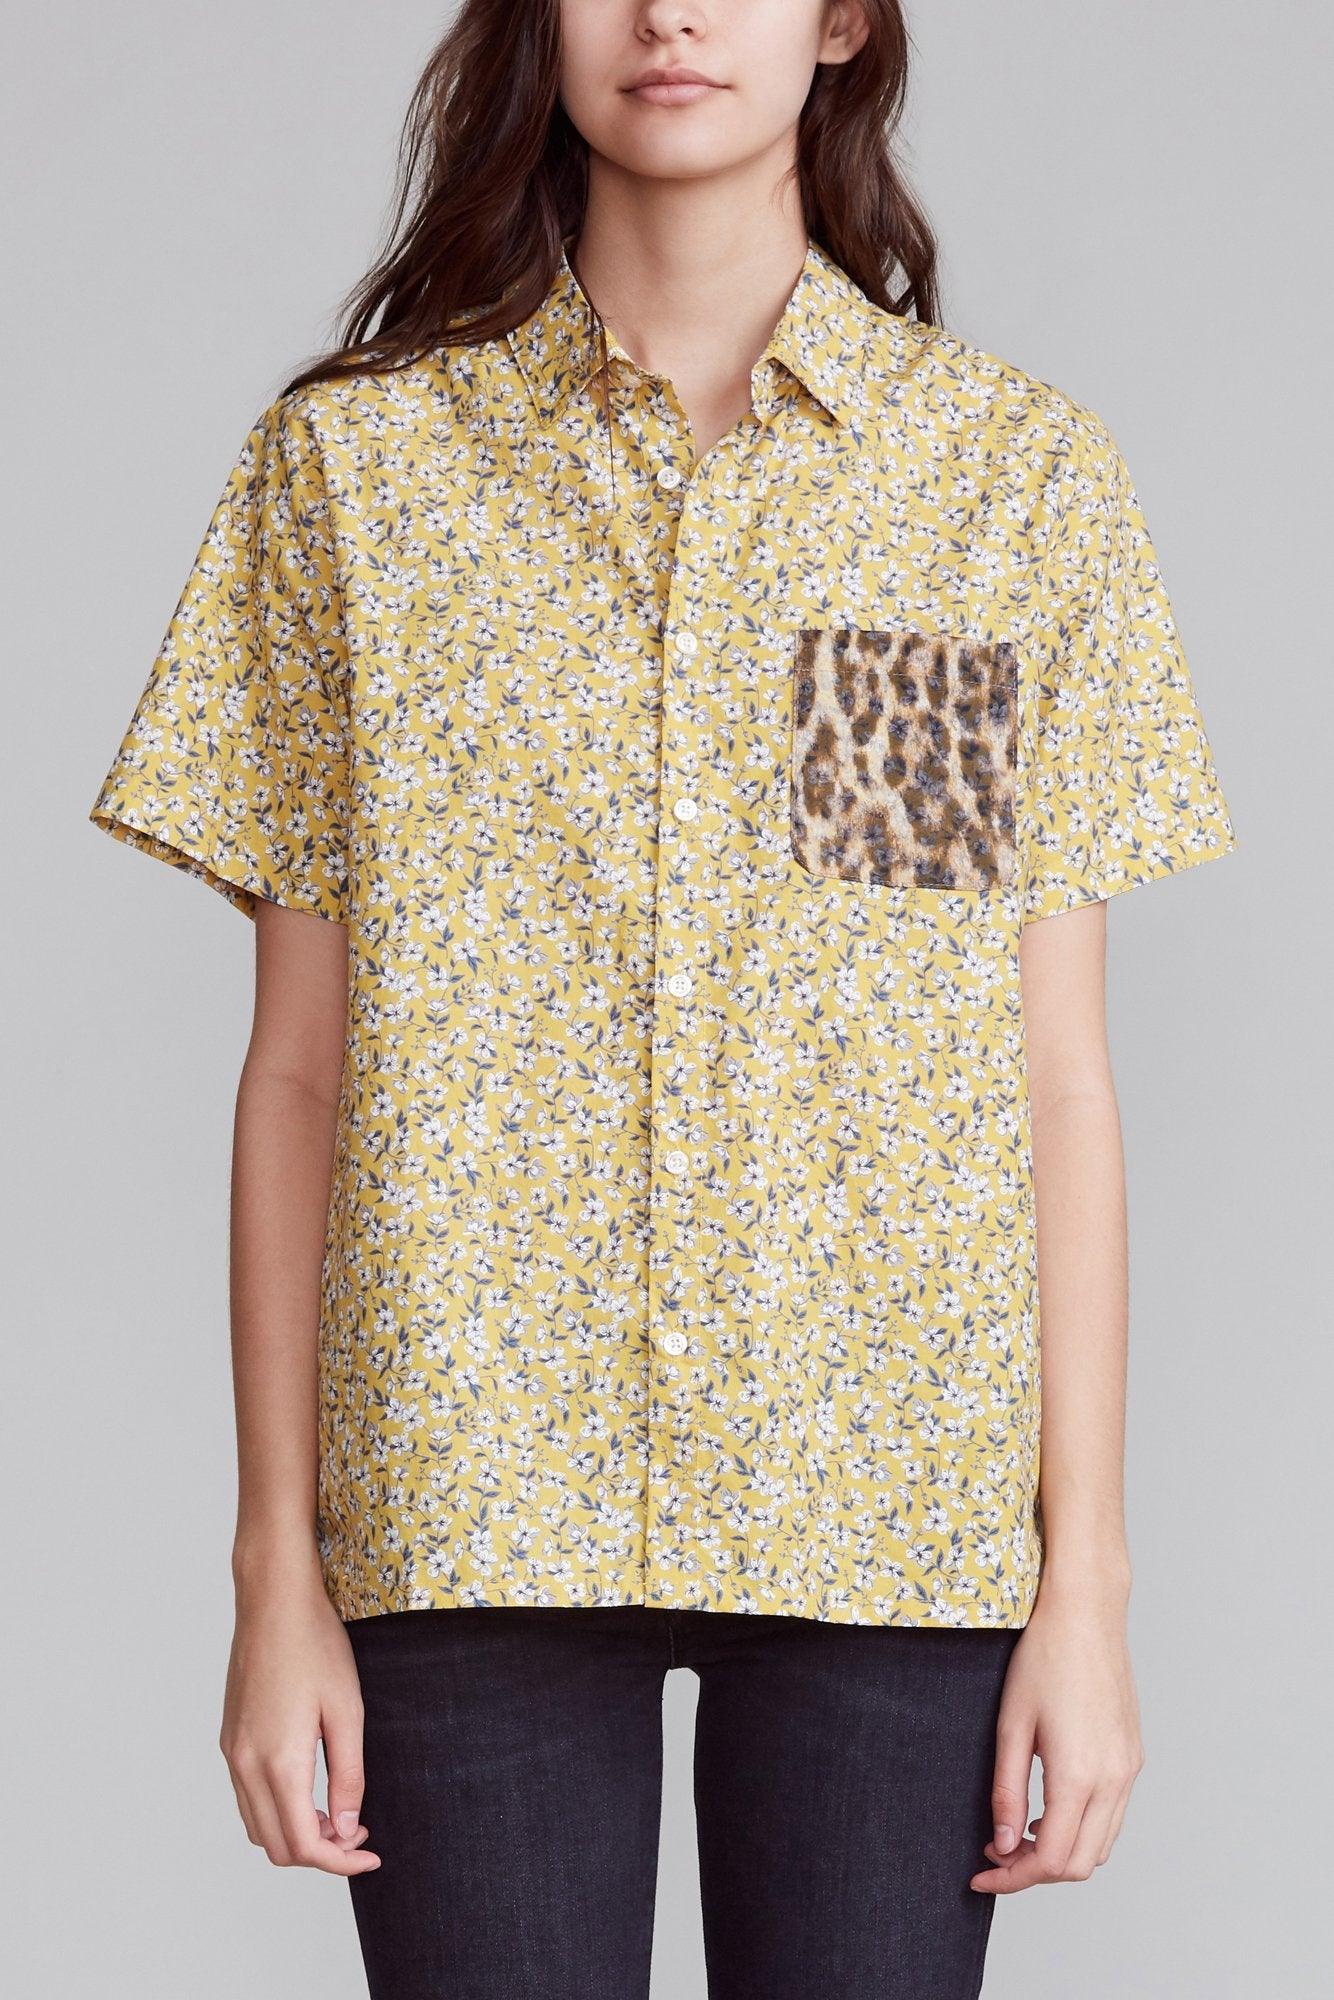 Tony Shirt - Yellow Floral with Leopard